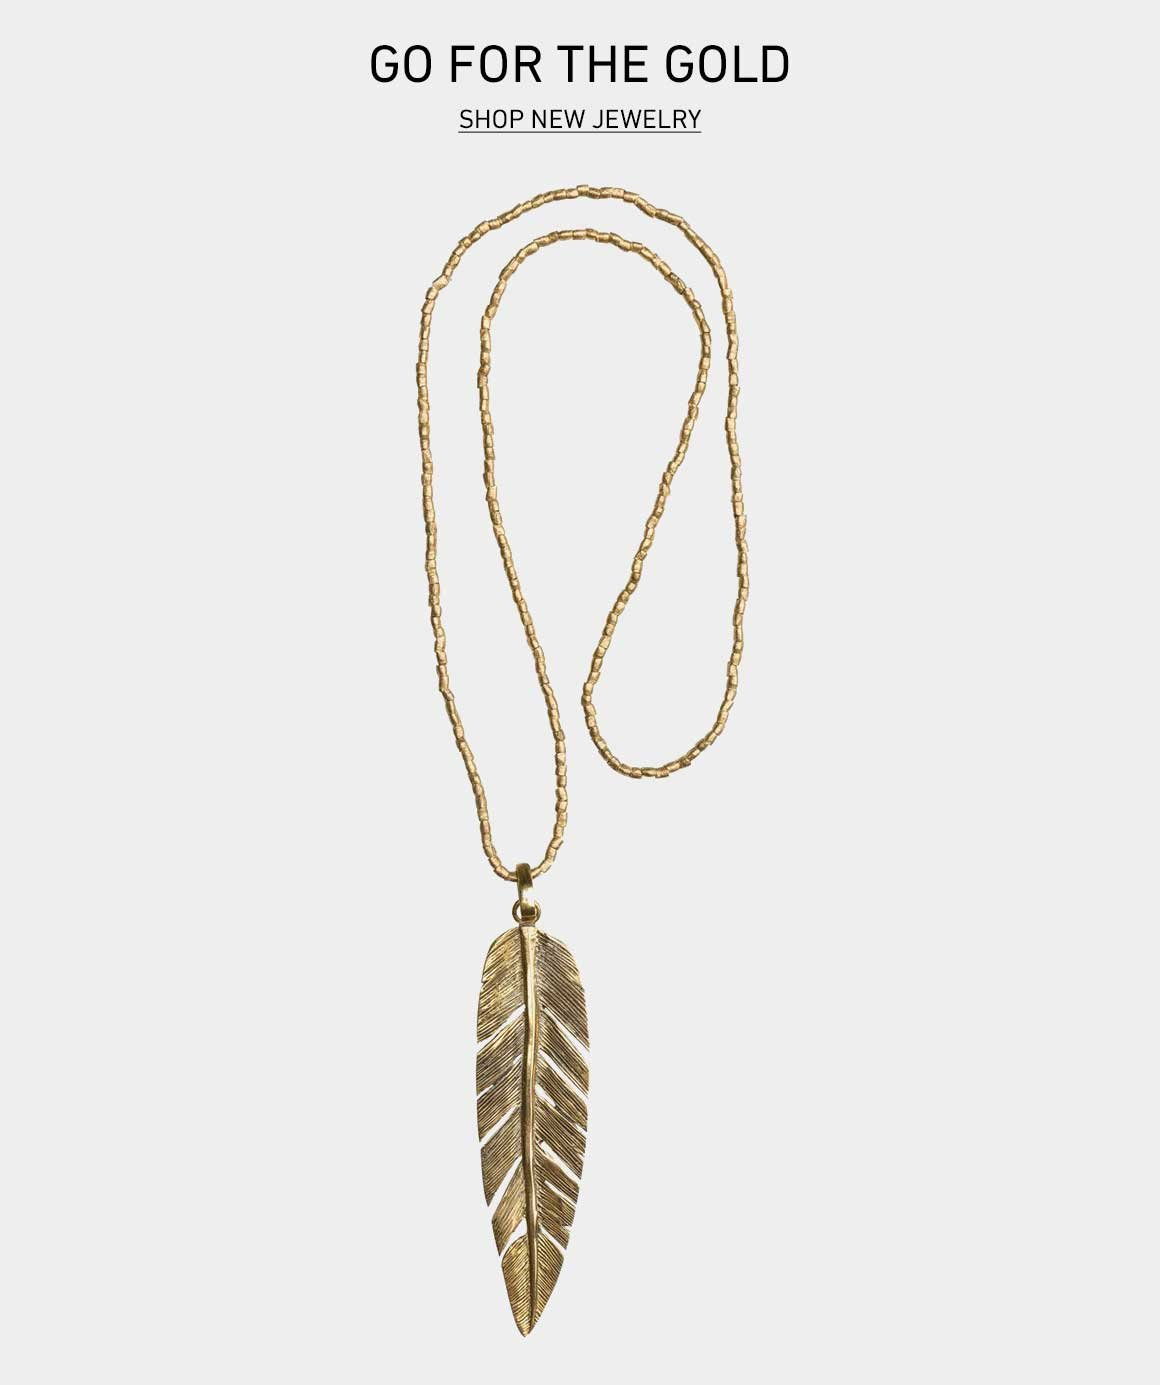 Spring Gold: Shop New Jewelry